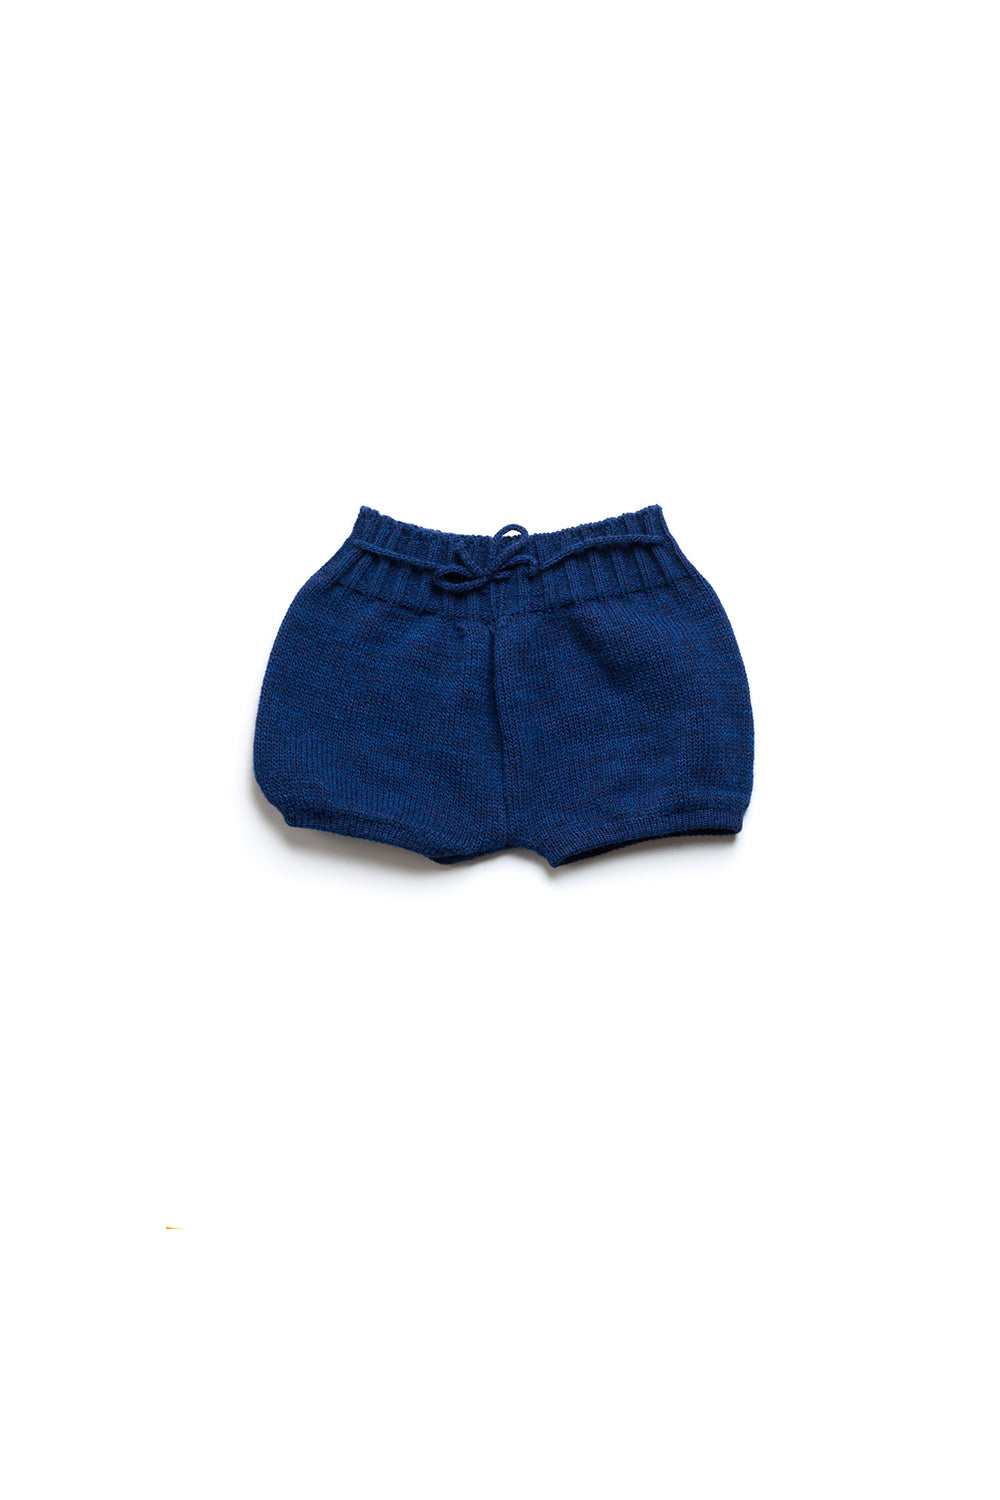 1748 Knit Shortie CW9